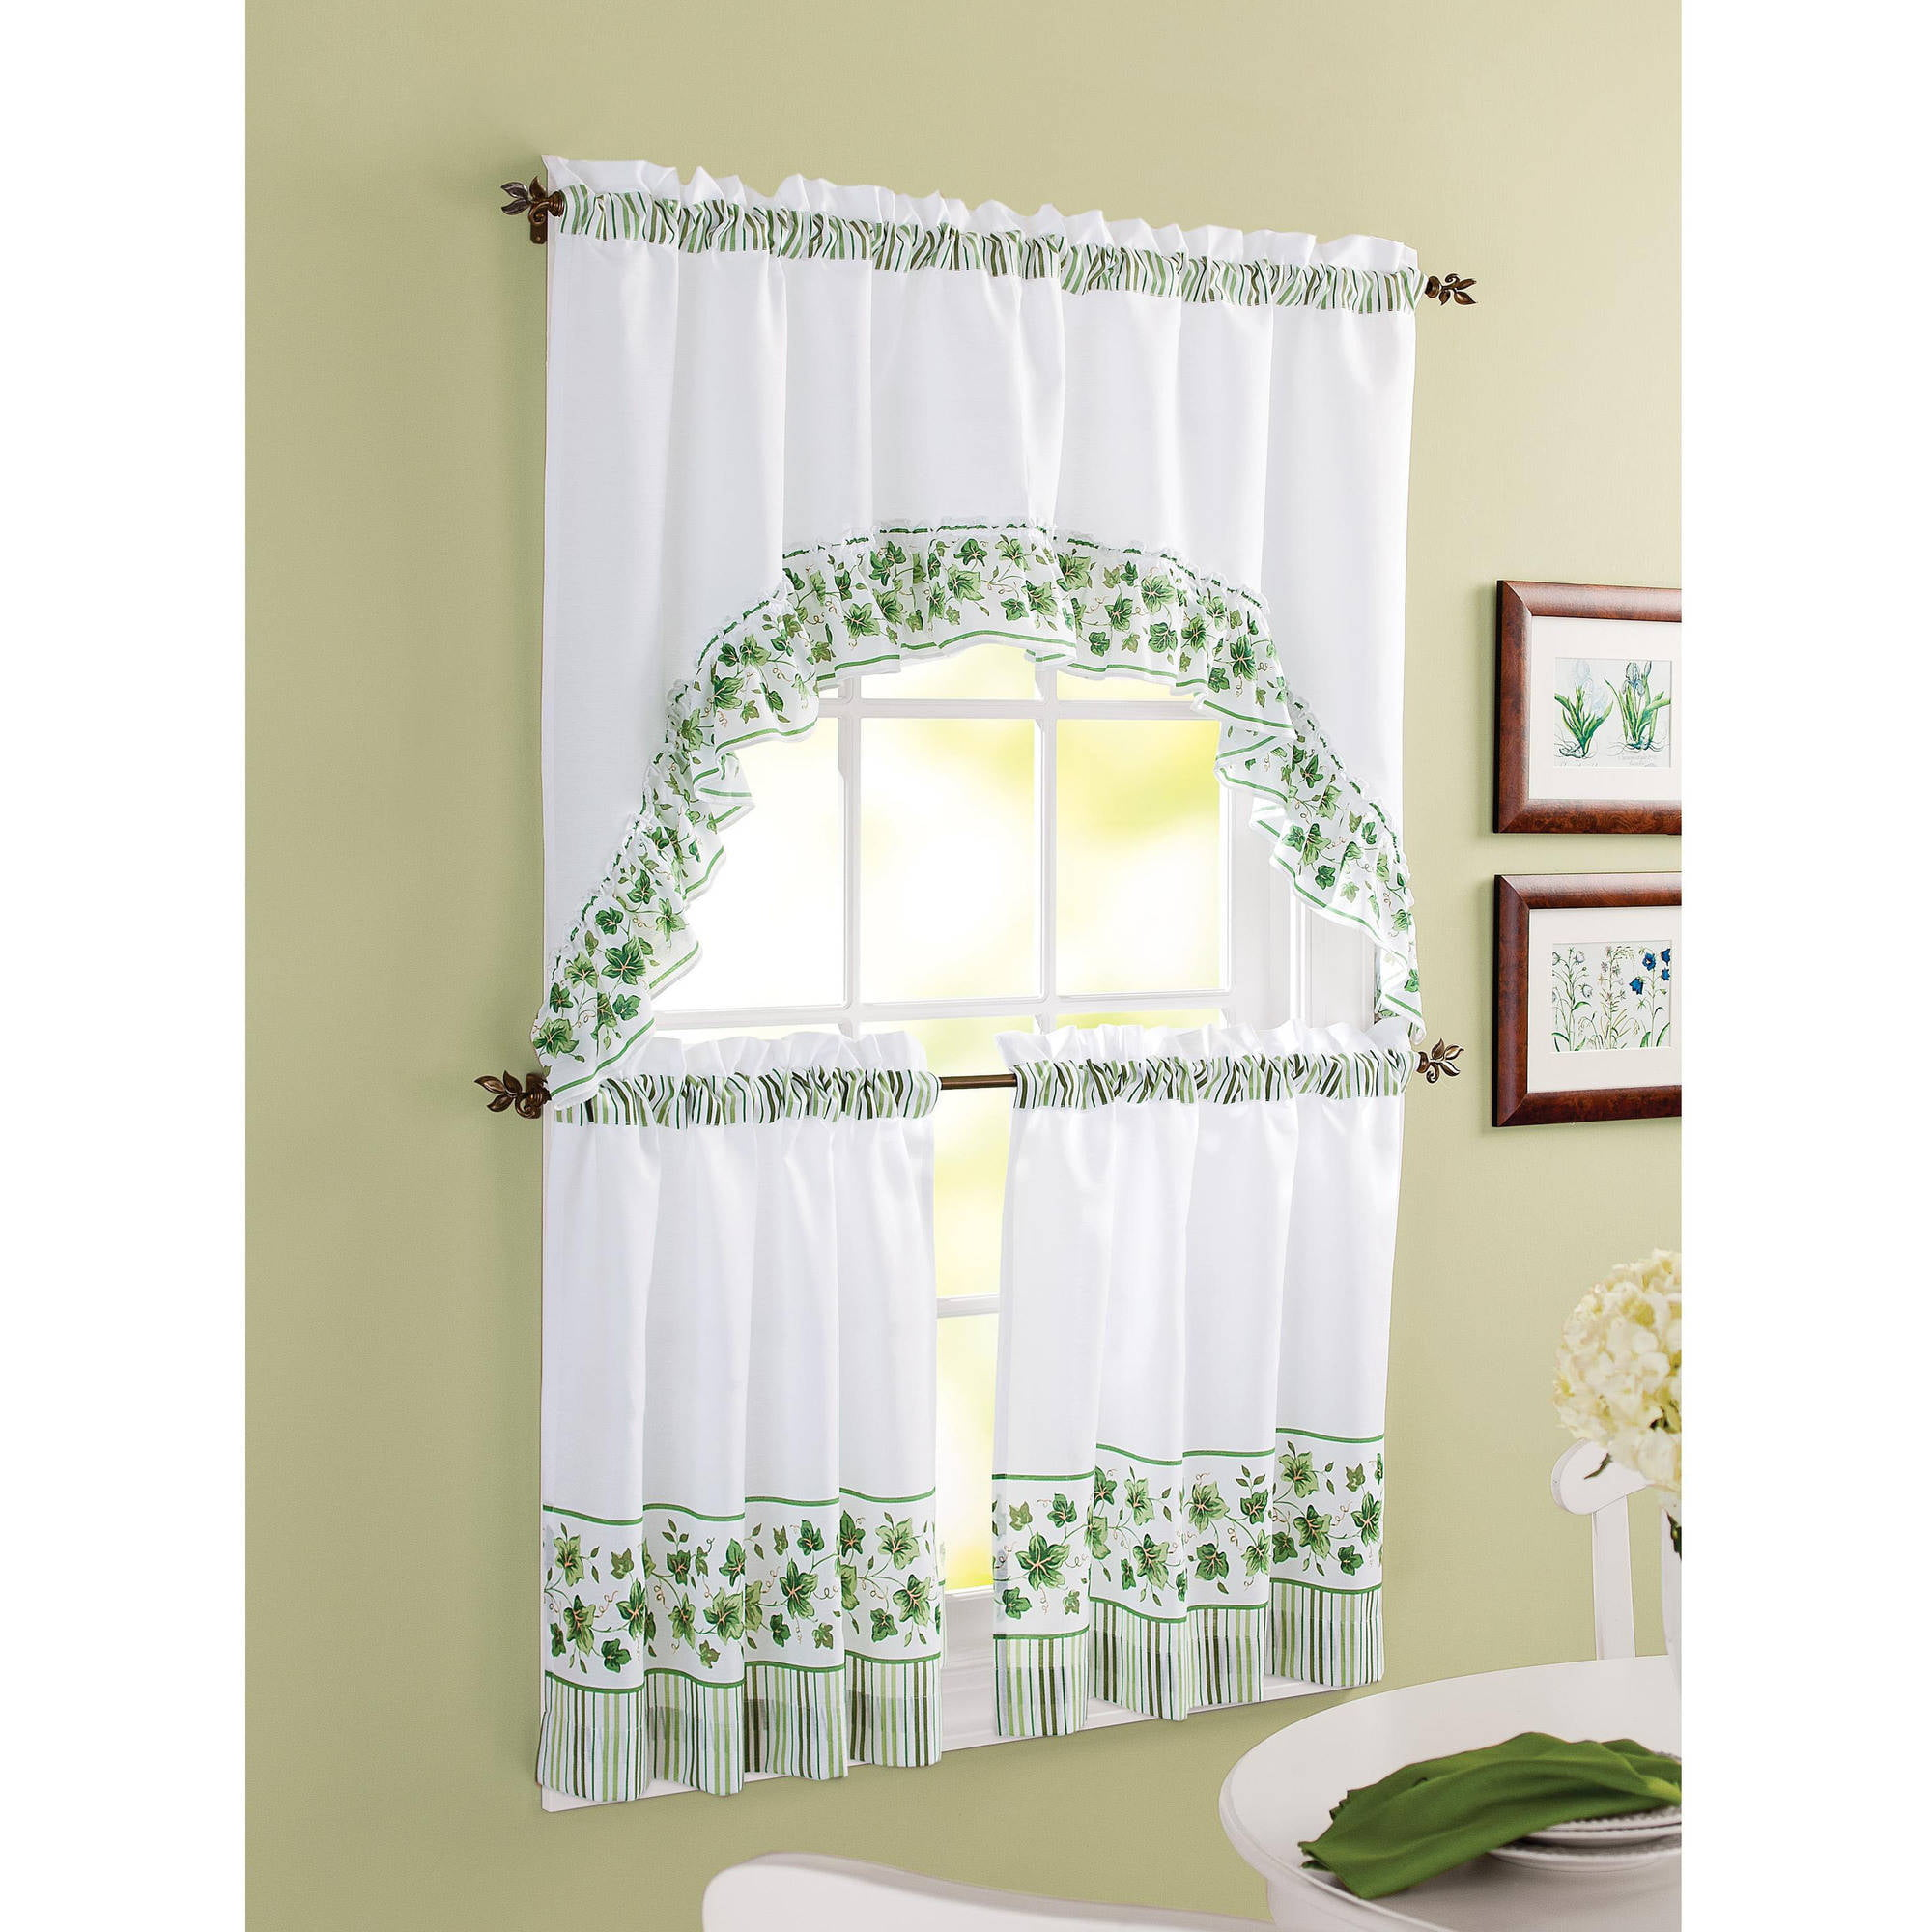 Chf you morning rooster tier curtain panel set - Curtain for kitchen door ...